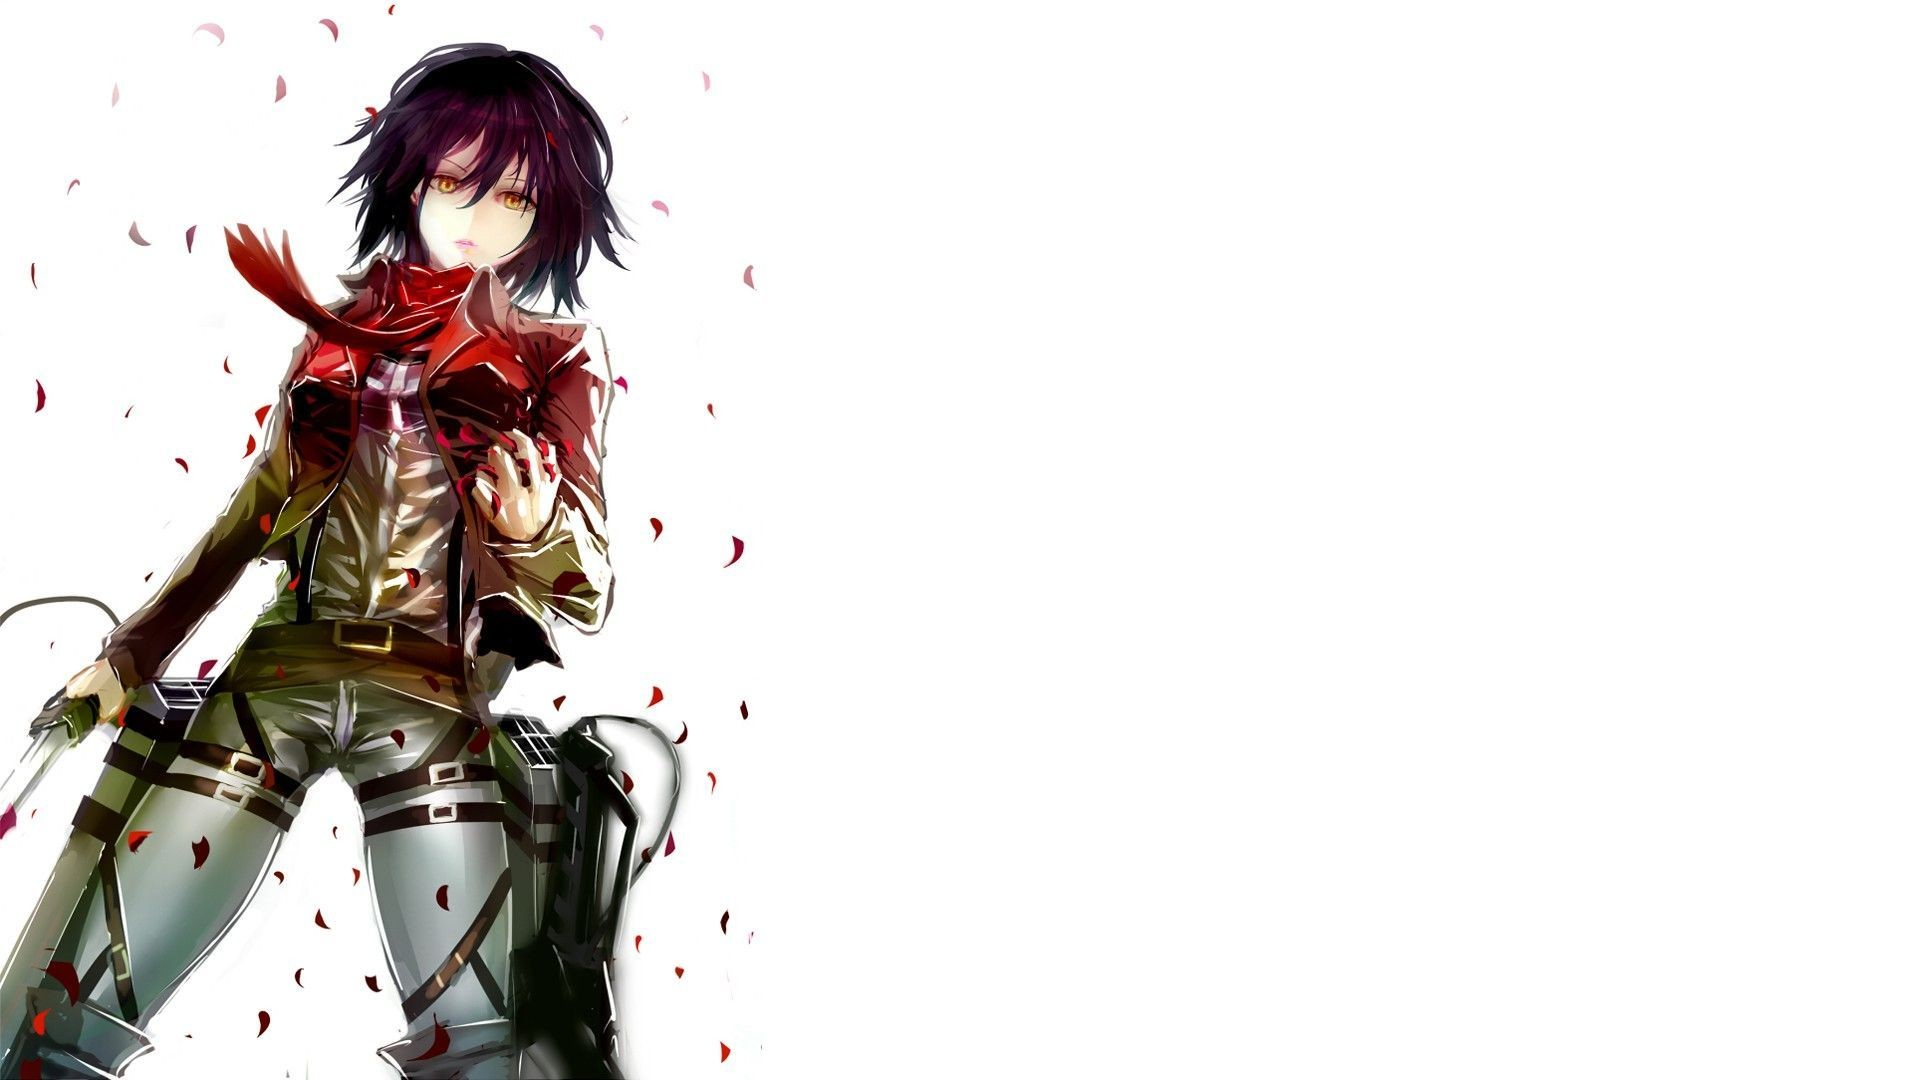 1920x1080 Mikasa Ackerman Shingeki No Kyojin 27311 Hd Wallpapers Background in Anime  - Wugange.com